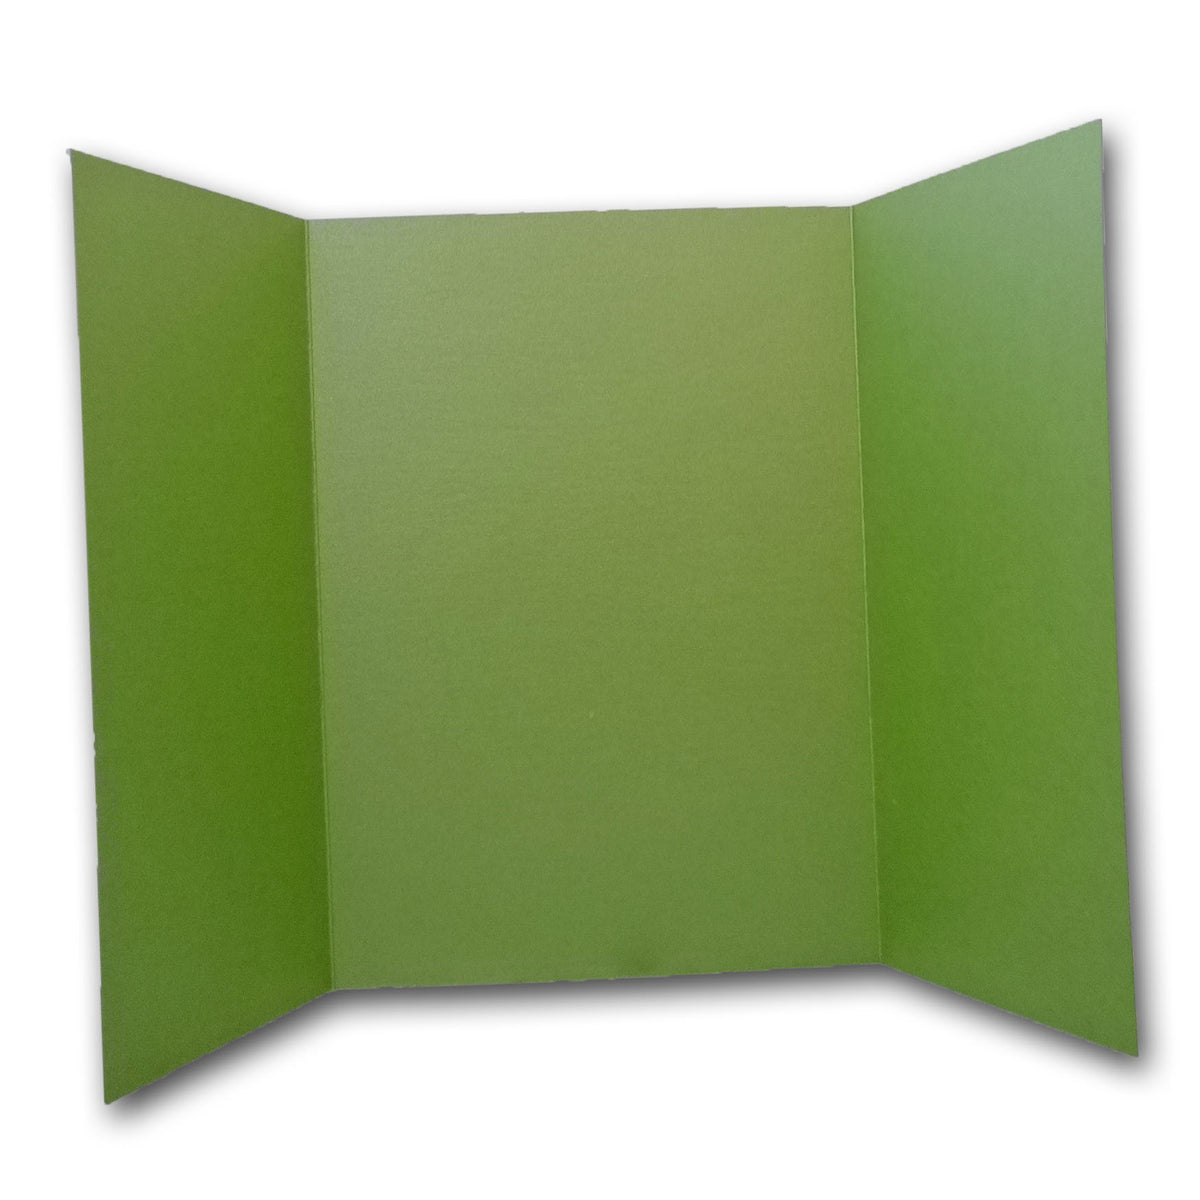 Shimmery Green 5x7 Gatefold Discount Card Stock DIY Invitations